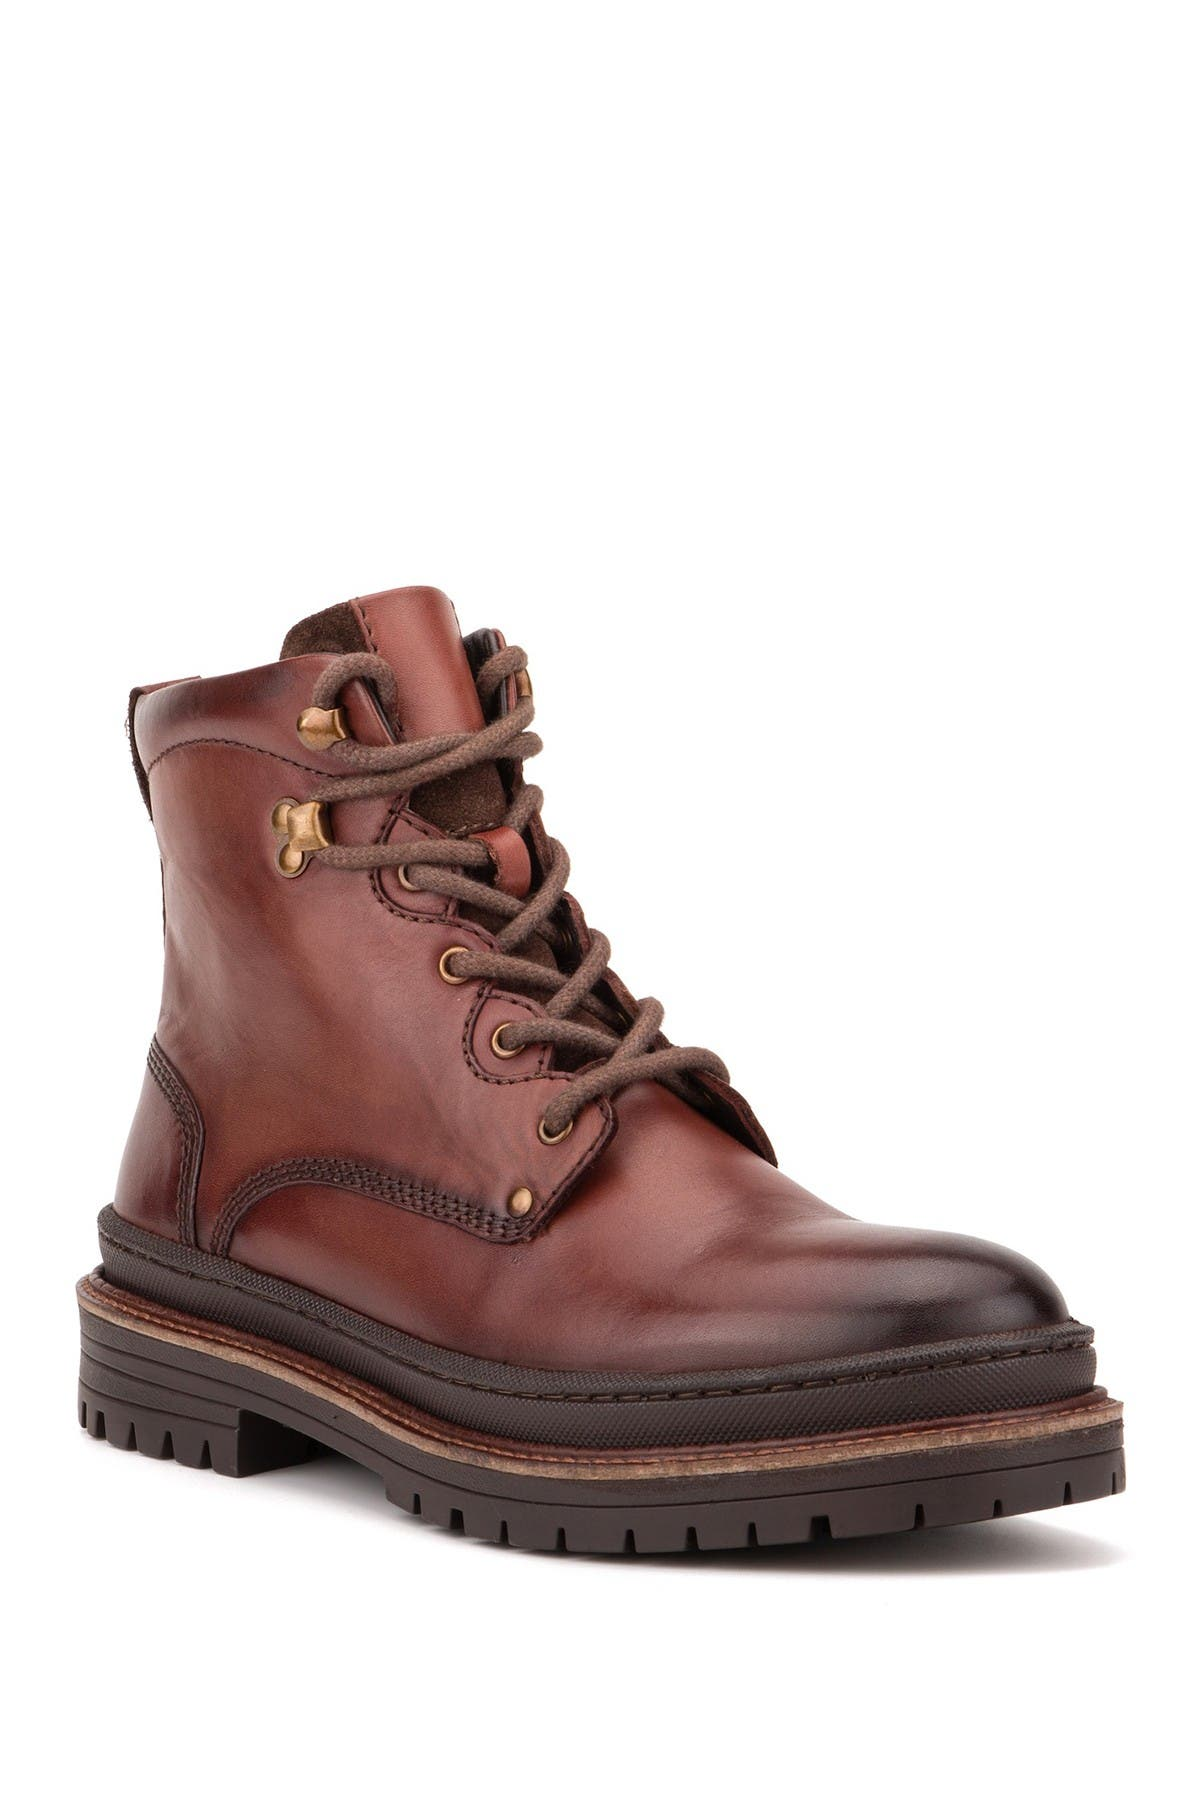 Image of Vintage Foundry Orian Leather Boot